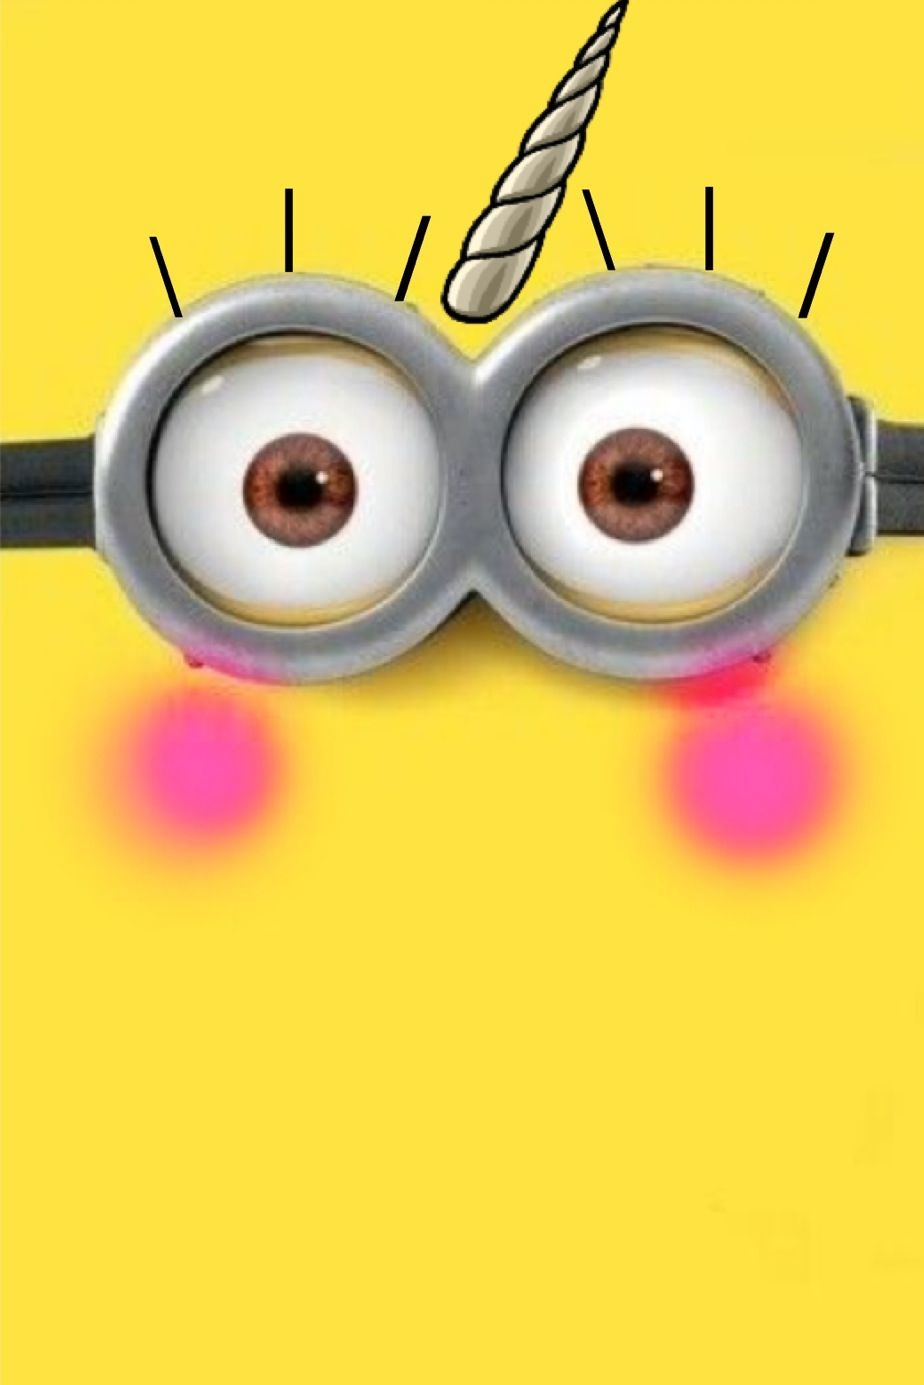 Minions Wallpaper Iphone Pesquisa Google My Sweet Heart